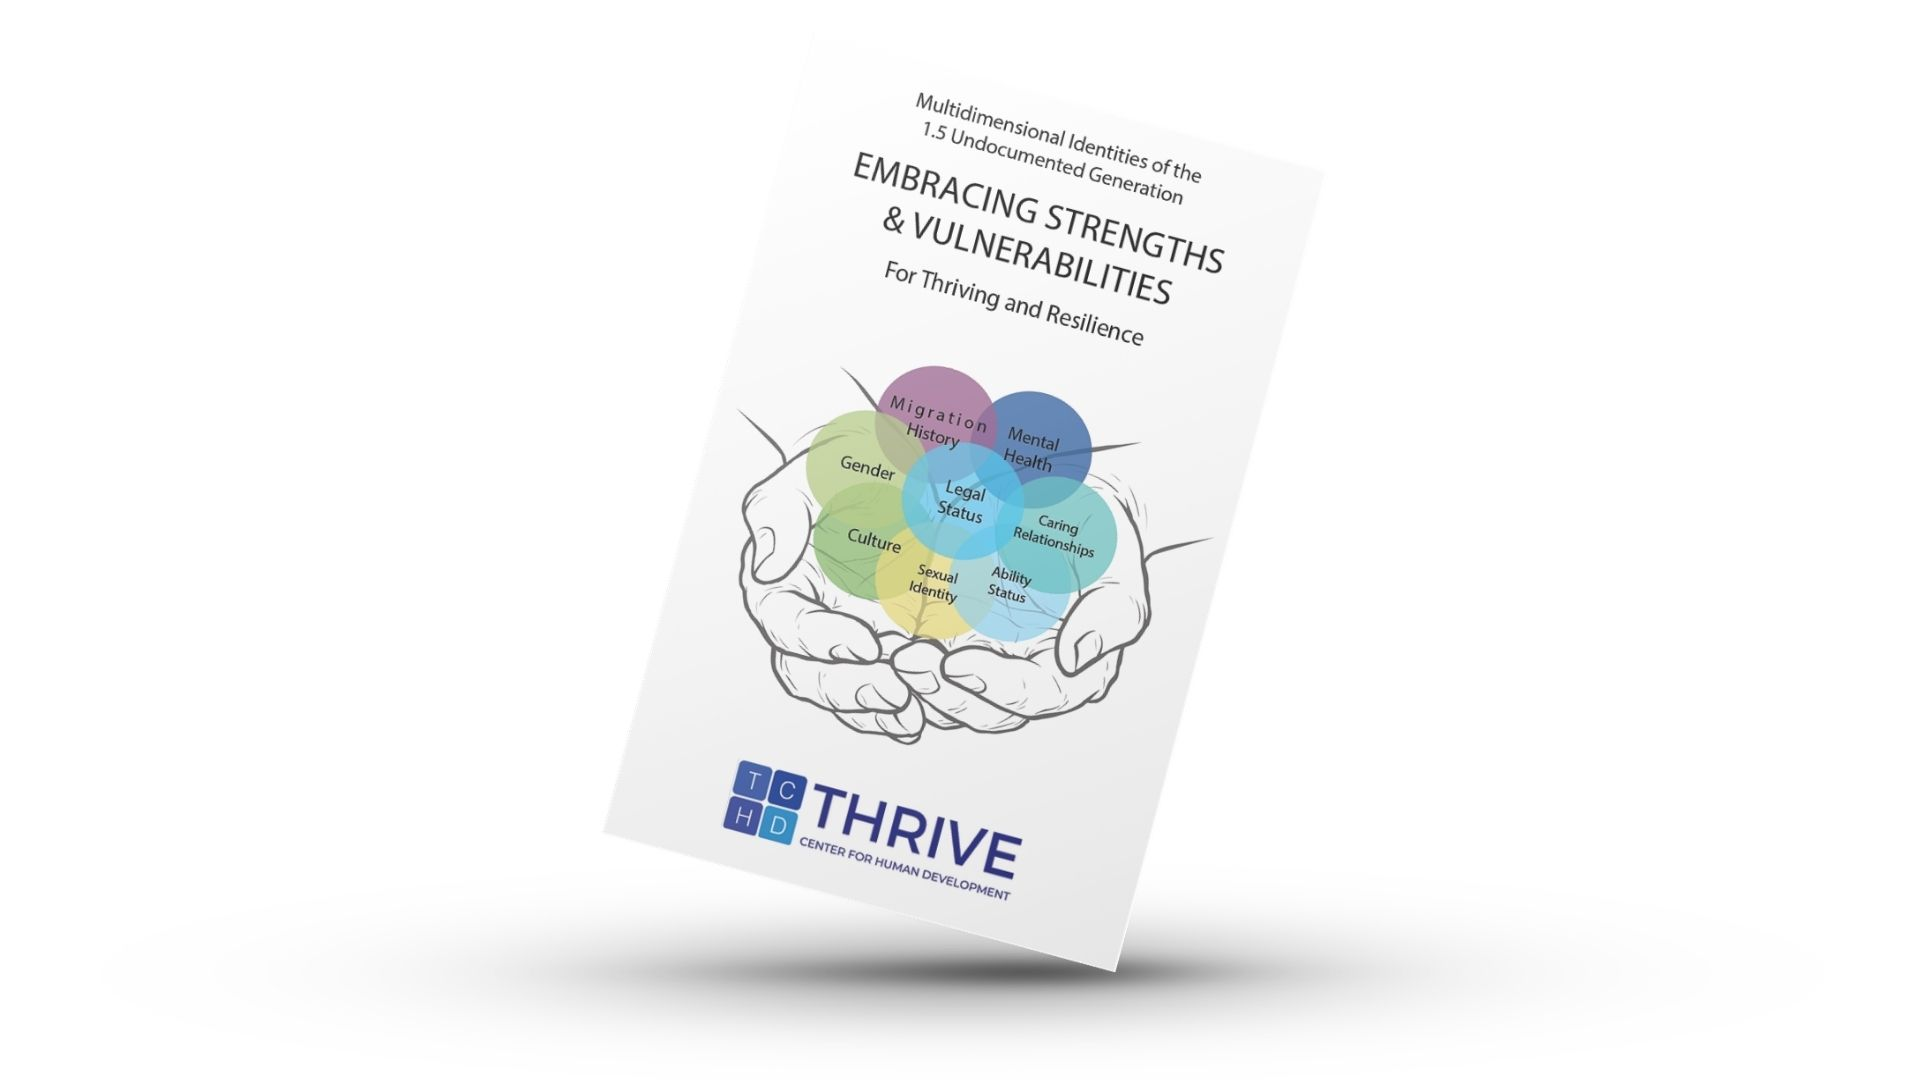 The Thrive Center's DACA self-care, mental health guide on a white background